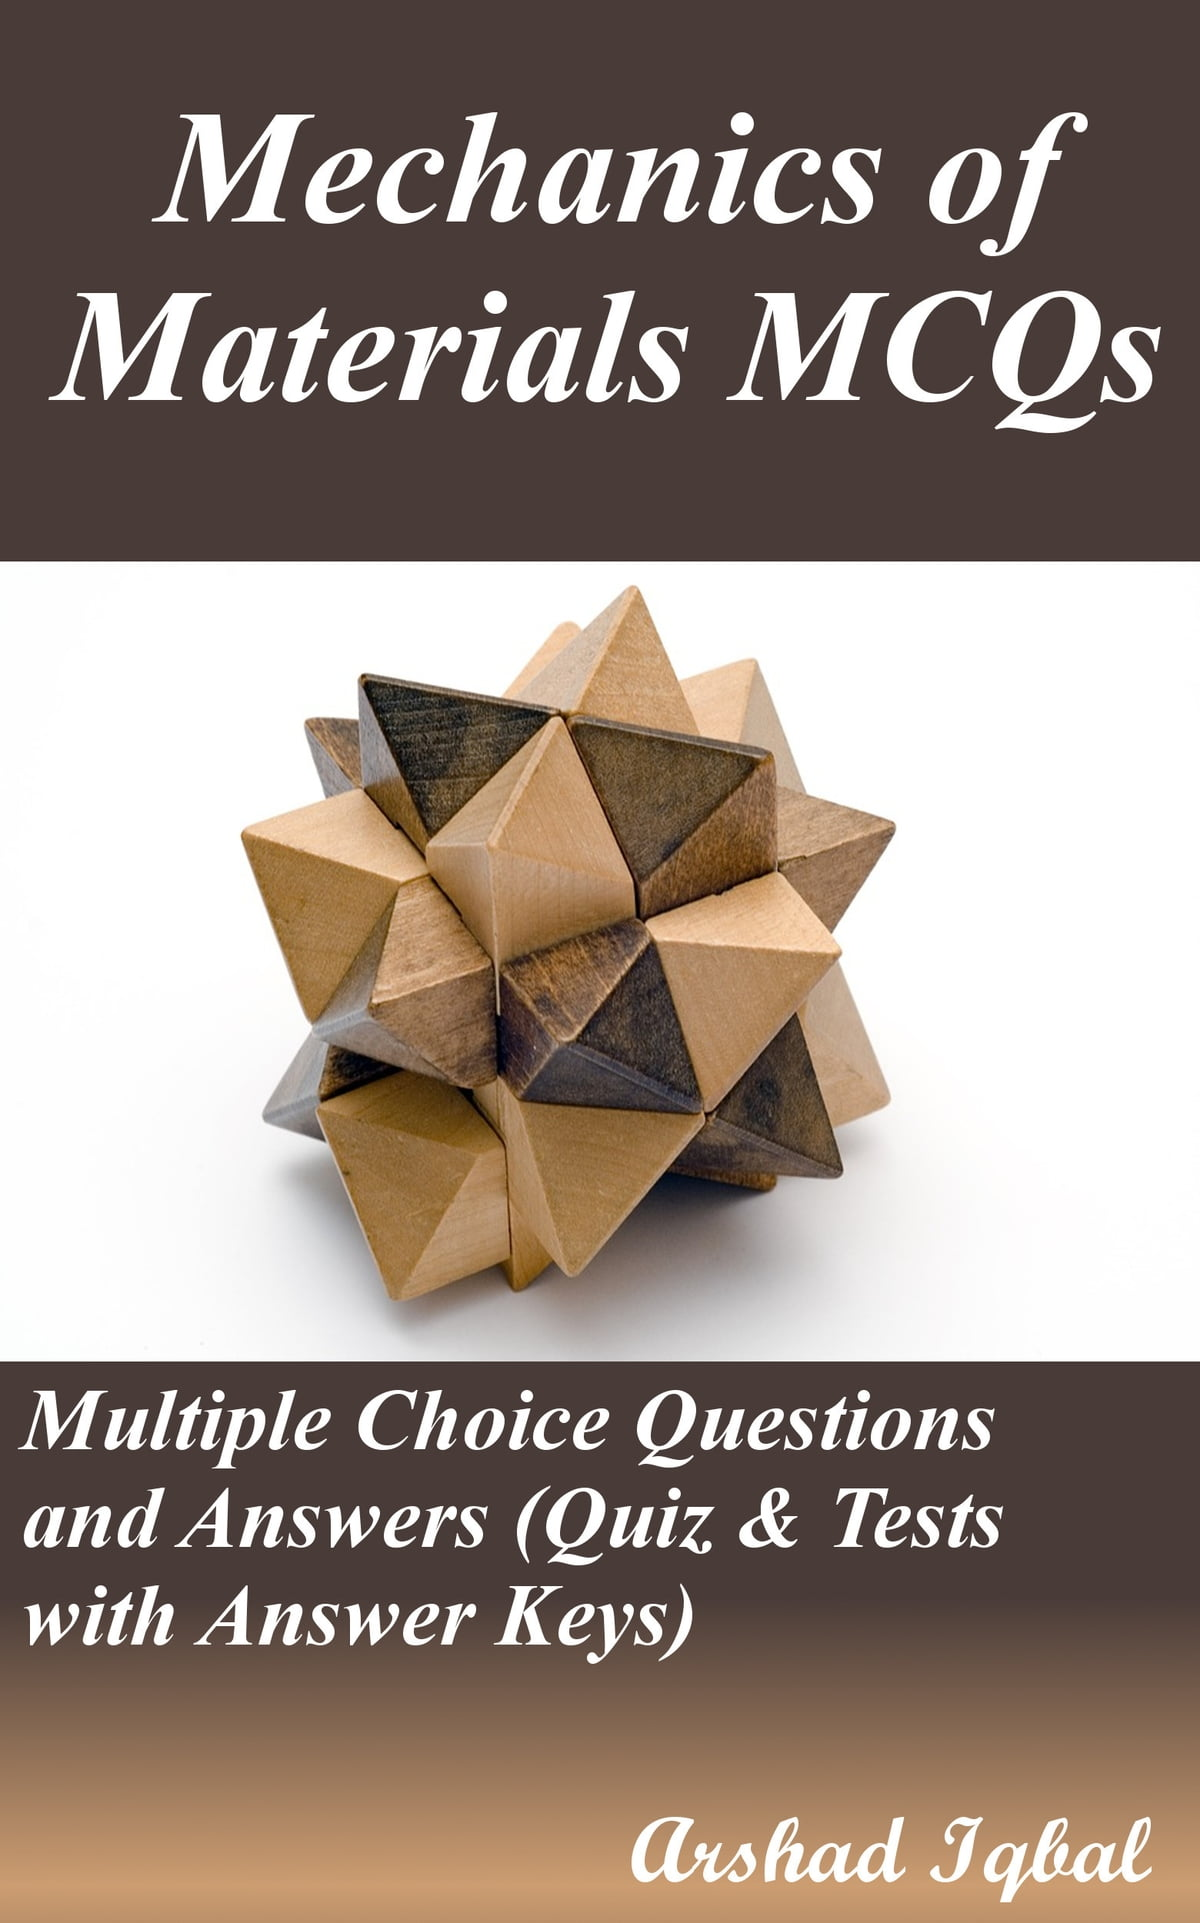 Mechanics of Materials MCQs: Multiple Choice Questions and Answers (Quiz &  Tests with Answer Keys) ebook by Arshad Iqbal - Rakuten Kobo